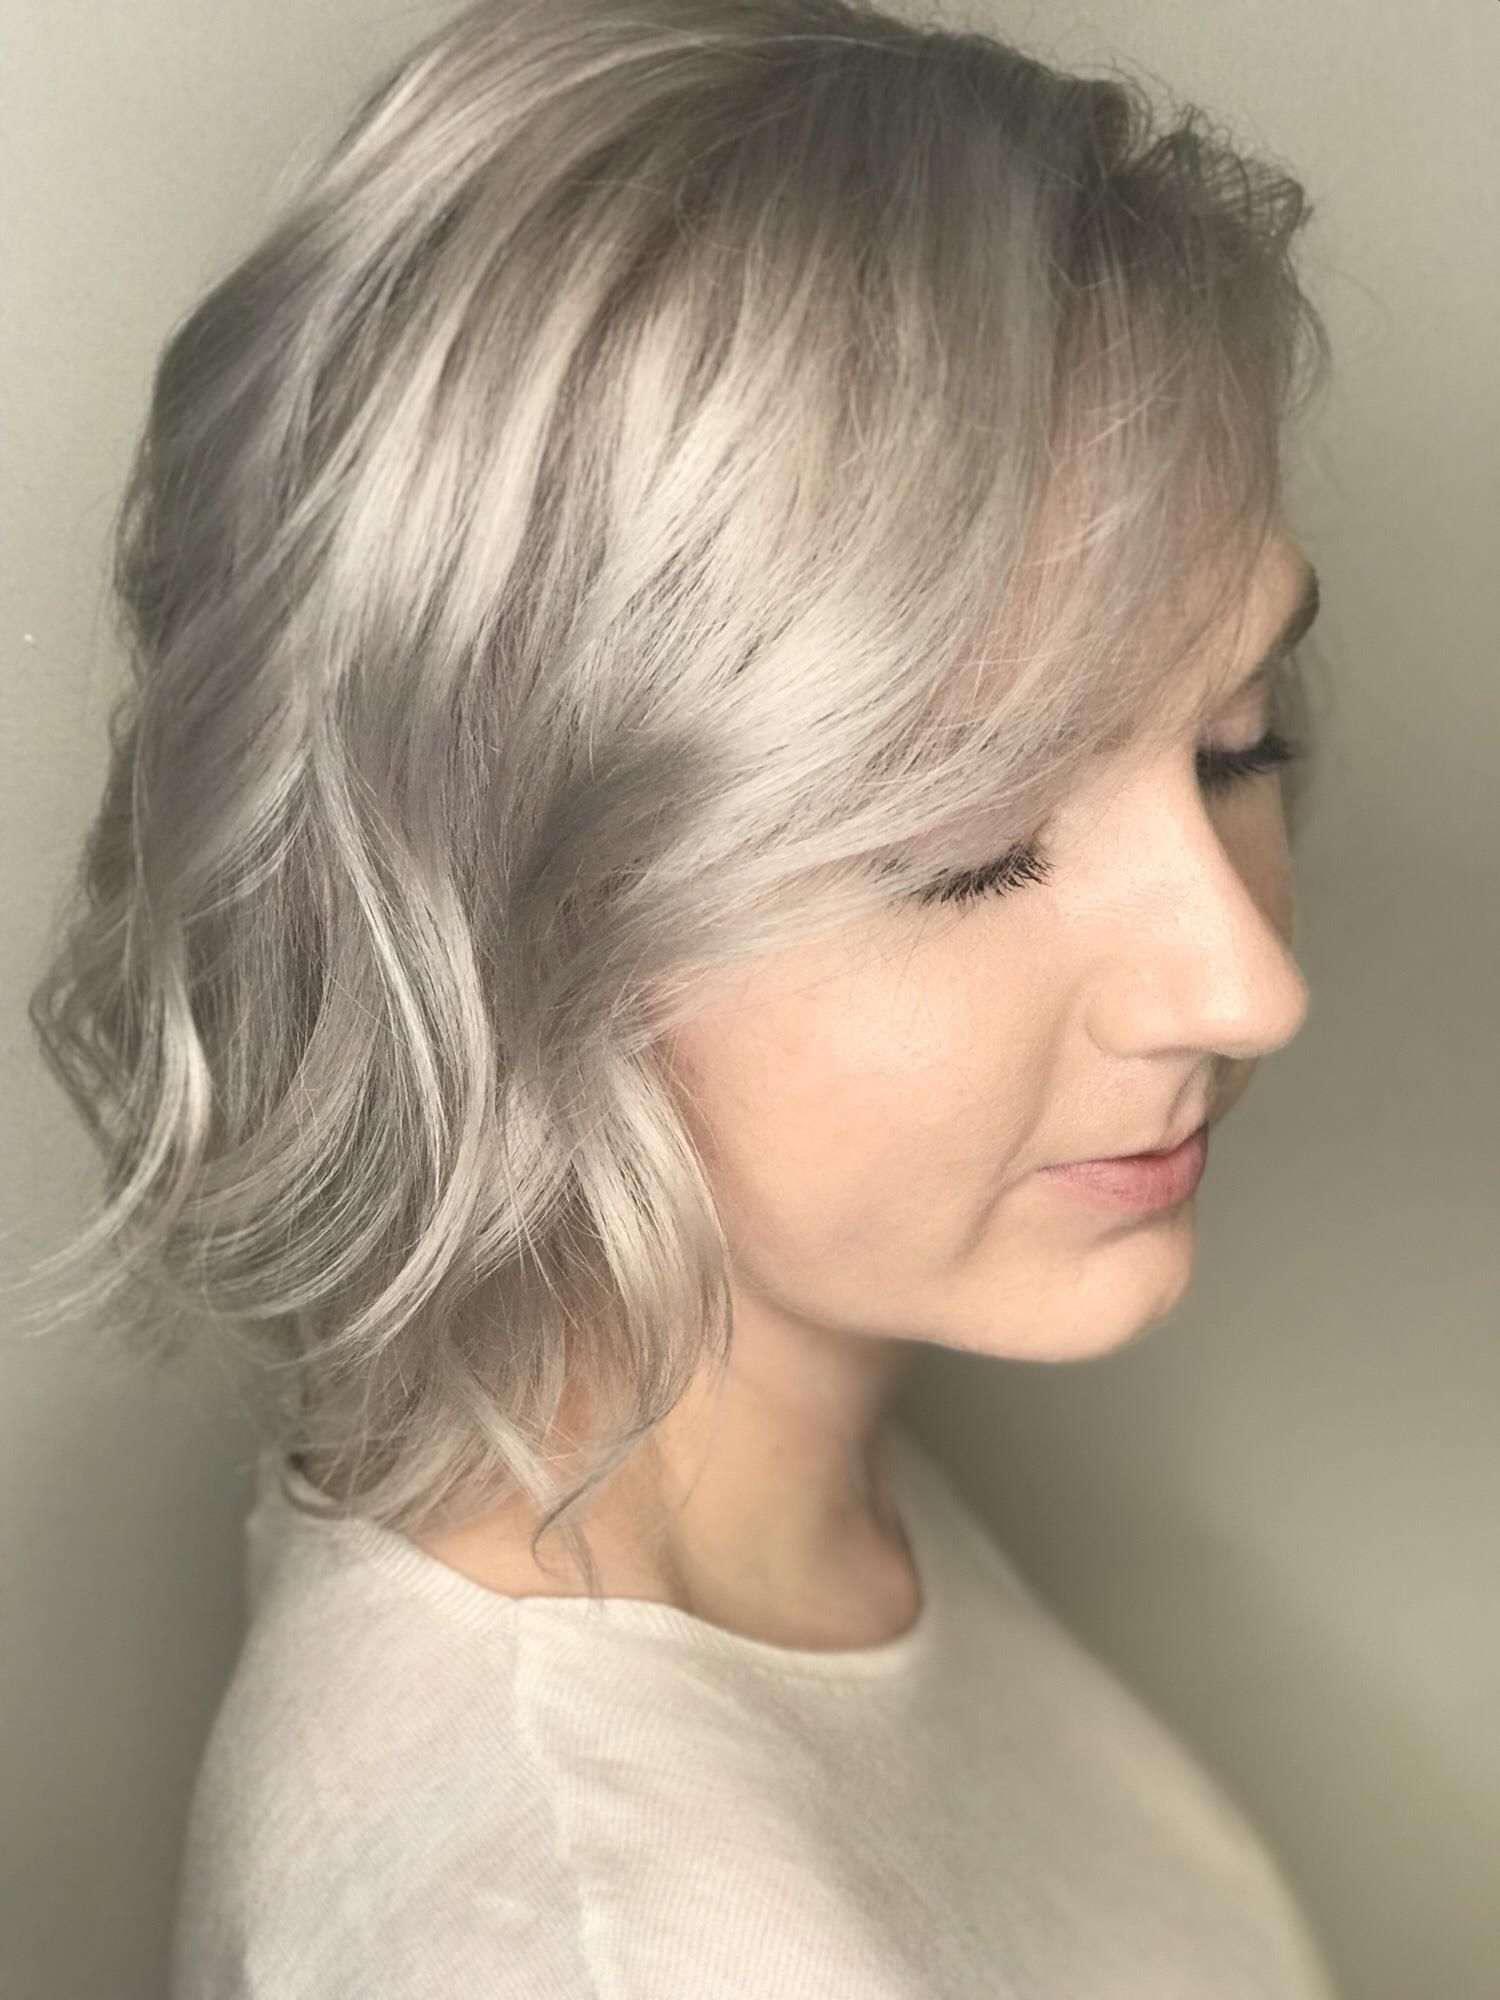 Color showcase of multidimensional color short hair ideas for